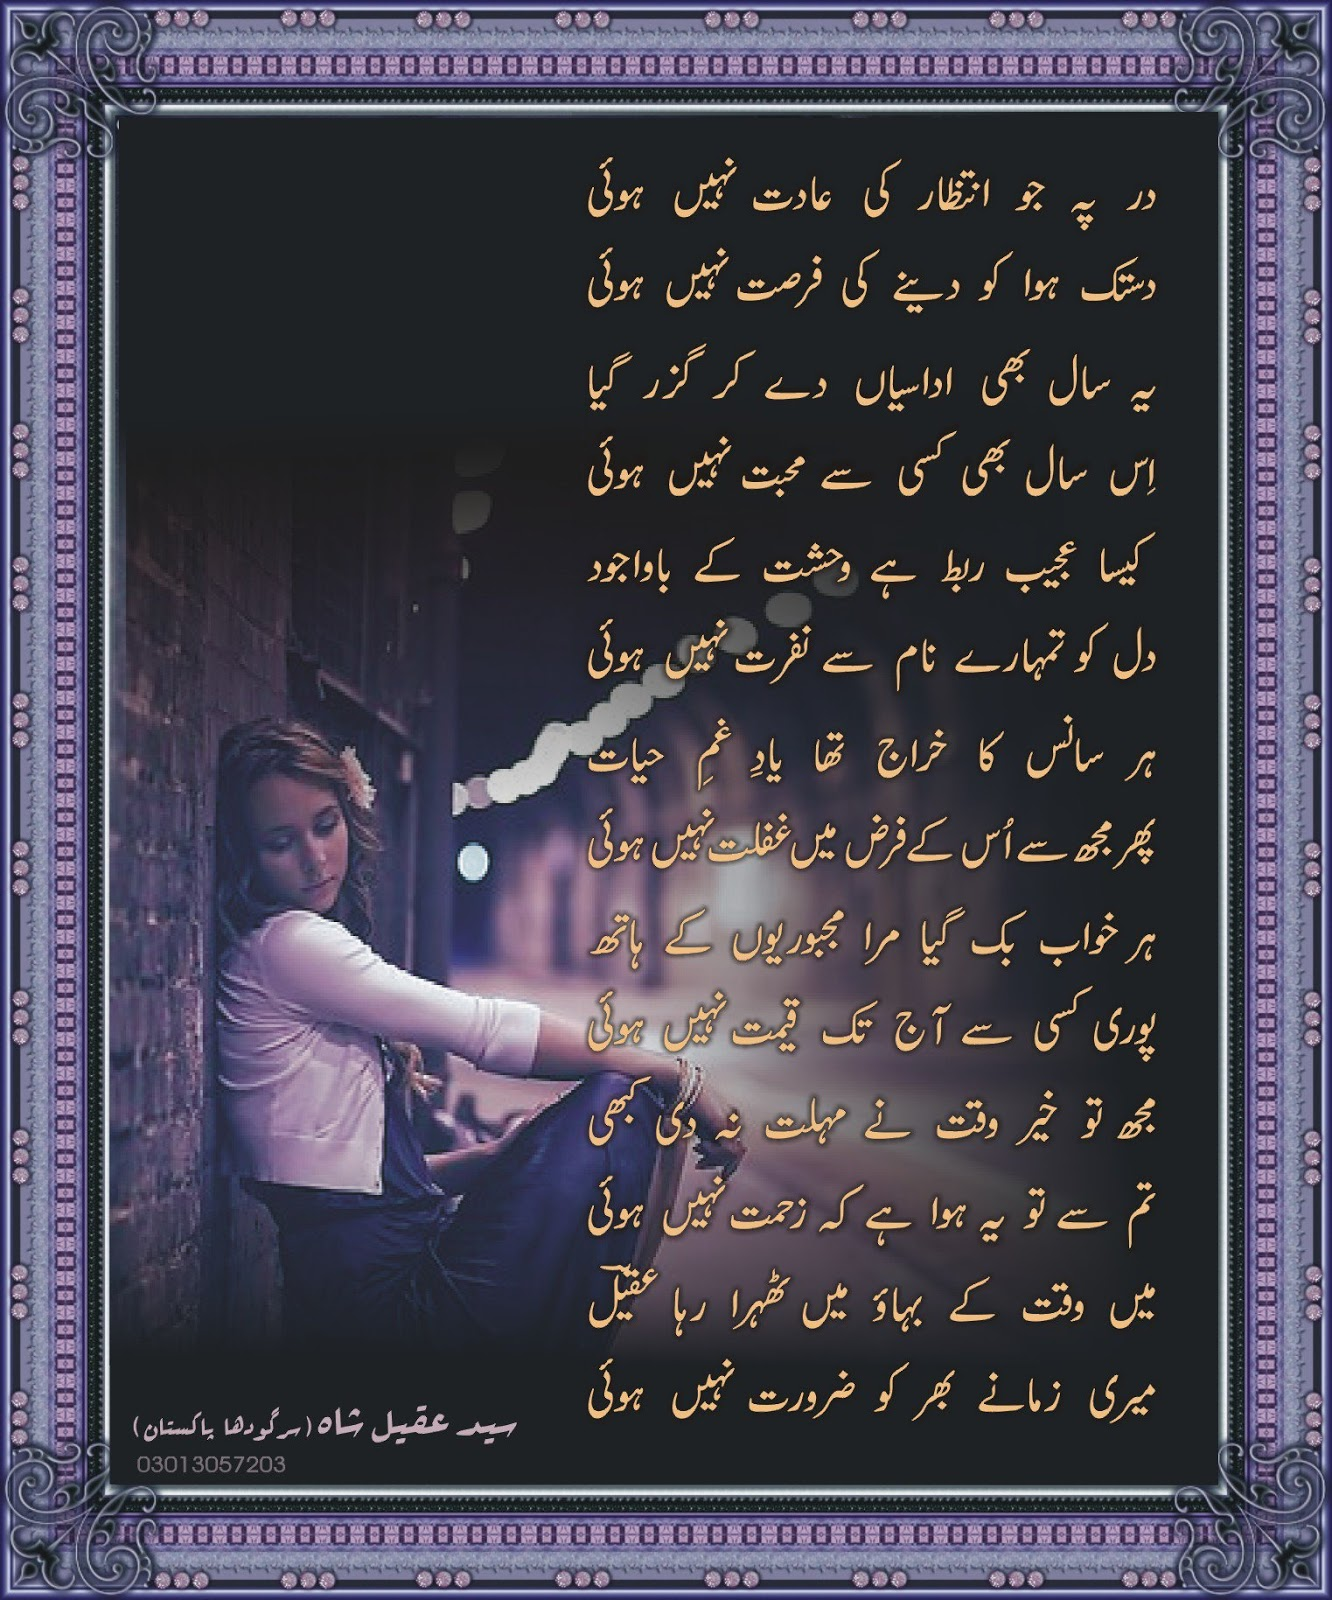 urdu beautiful sad and lovely poetry wallpapers and photos urdu 1332x1600